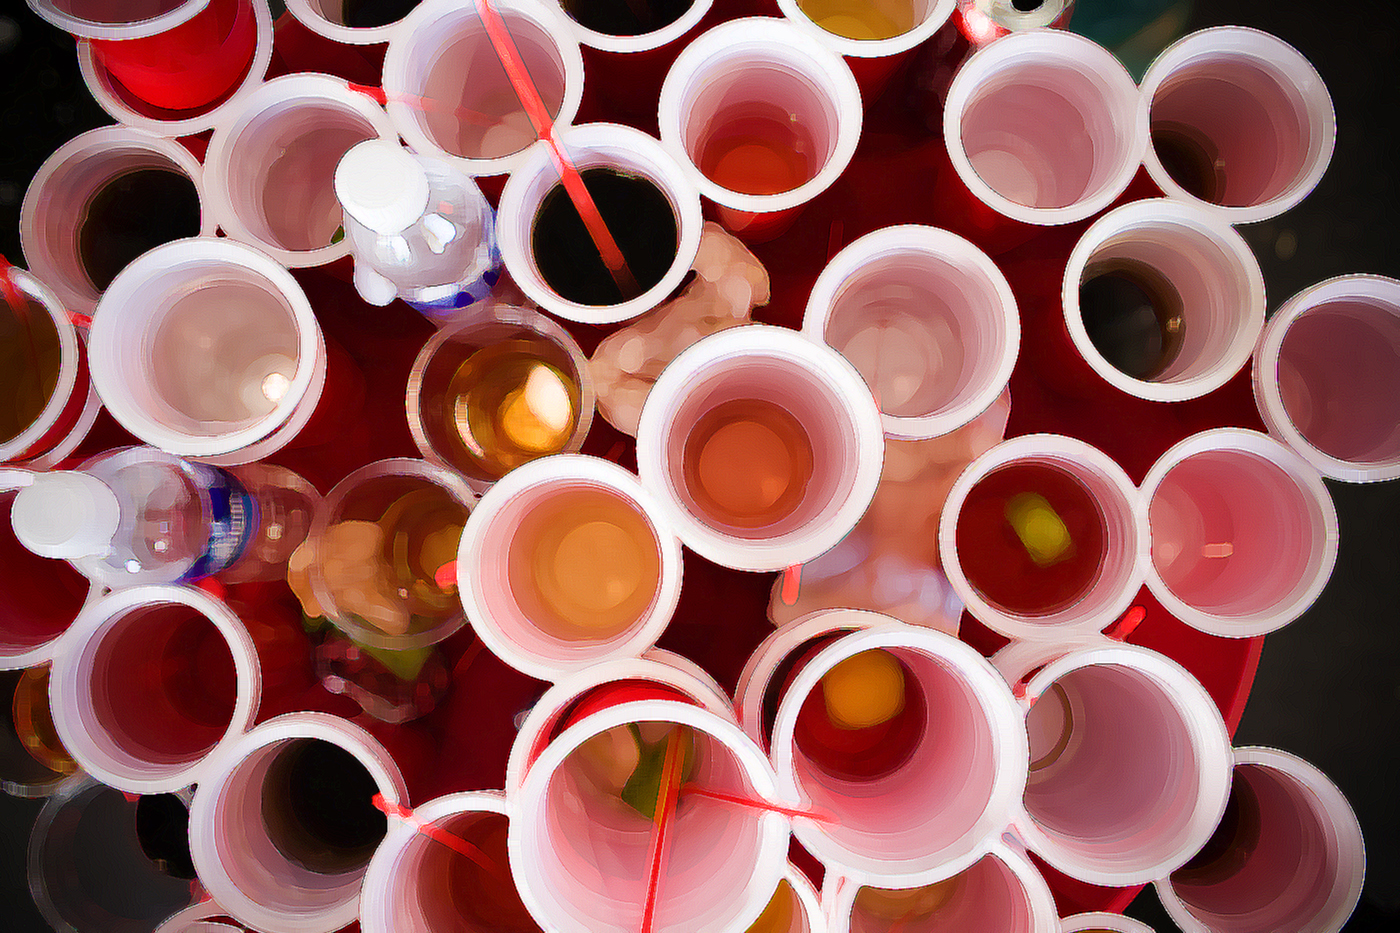 cups-at-party-2